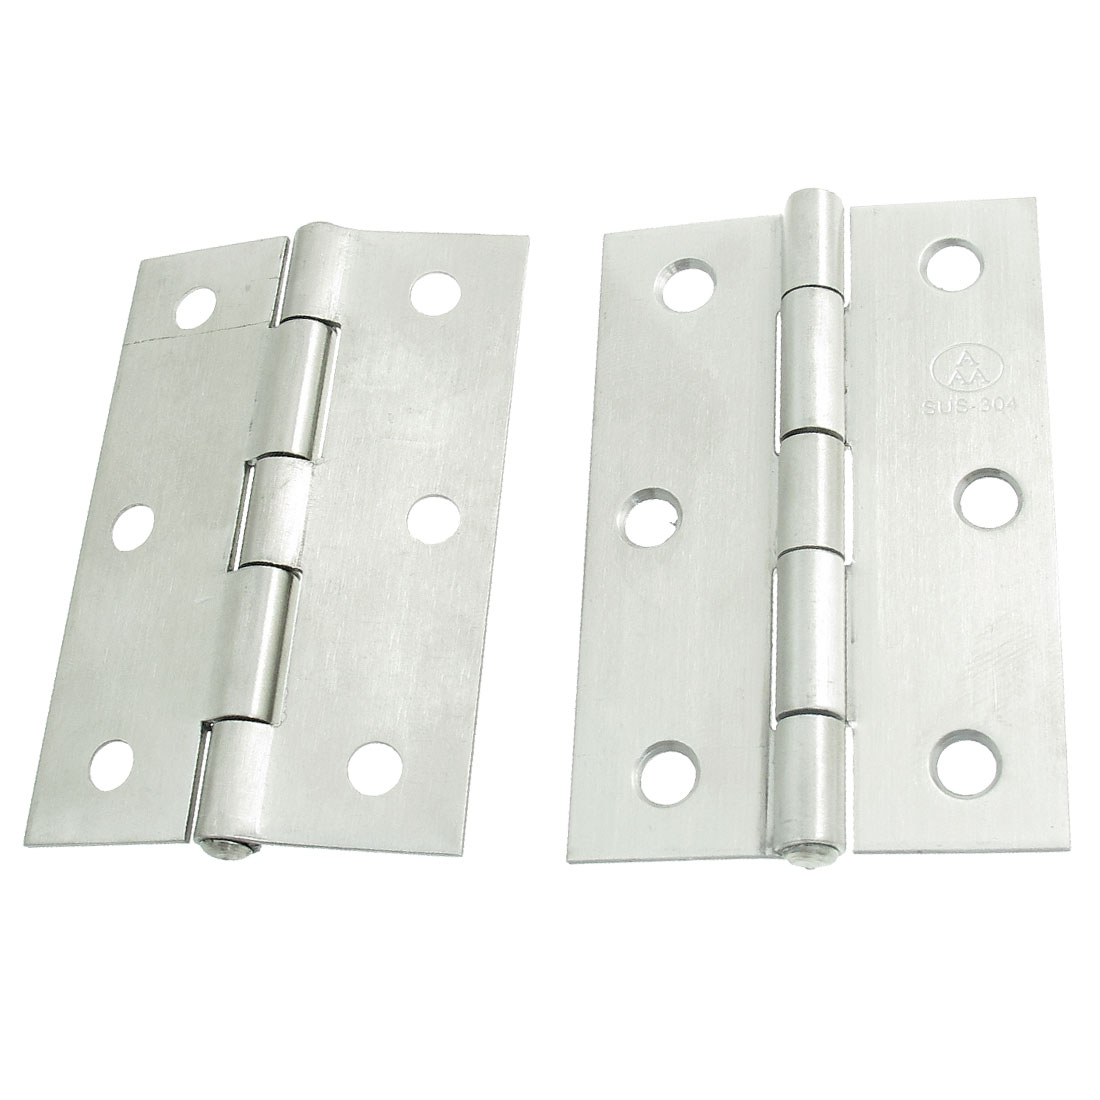 2-Pcs-3-Long-Silver-Tone-Metal-Window-Doors-Hinges